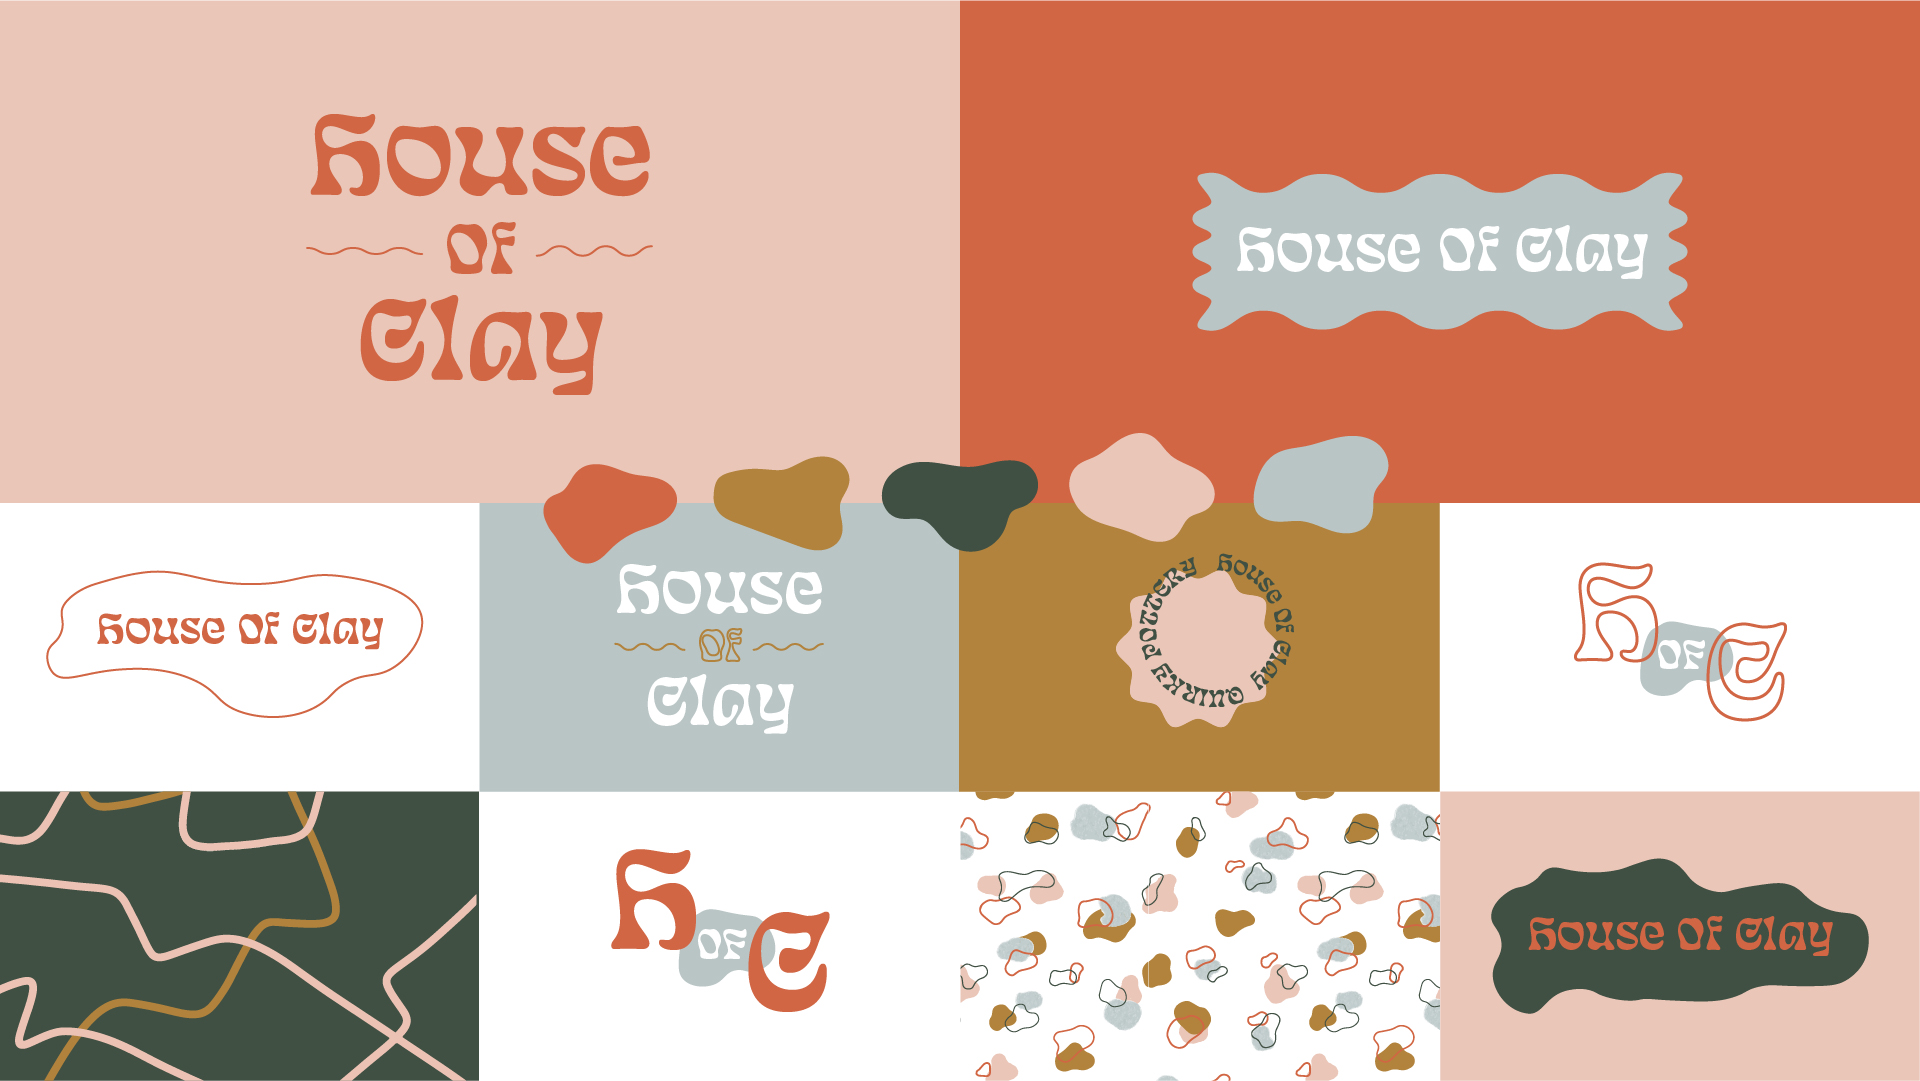 House of Clay concept